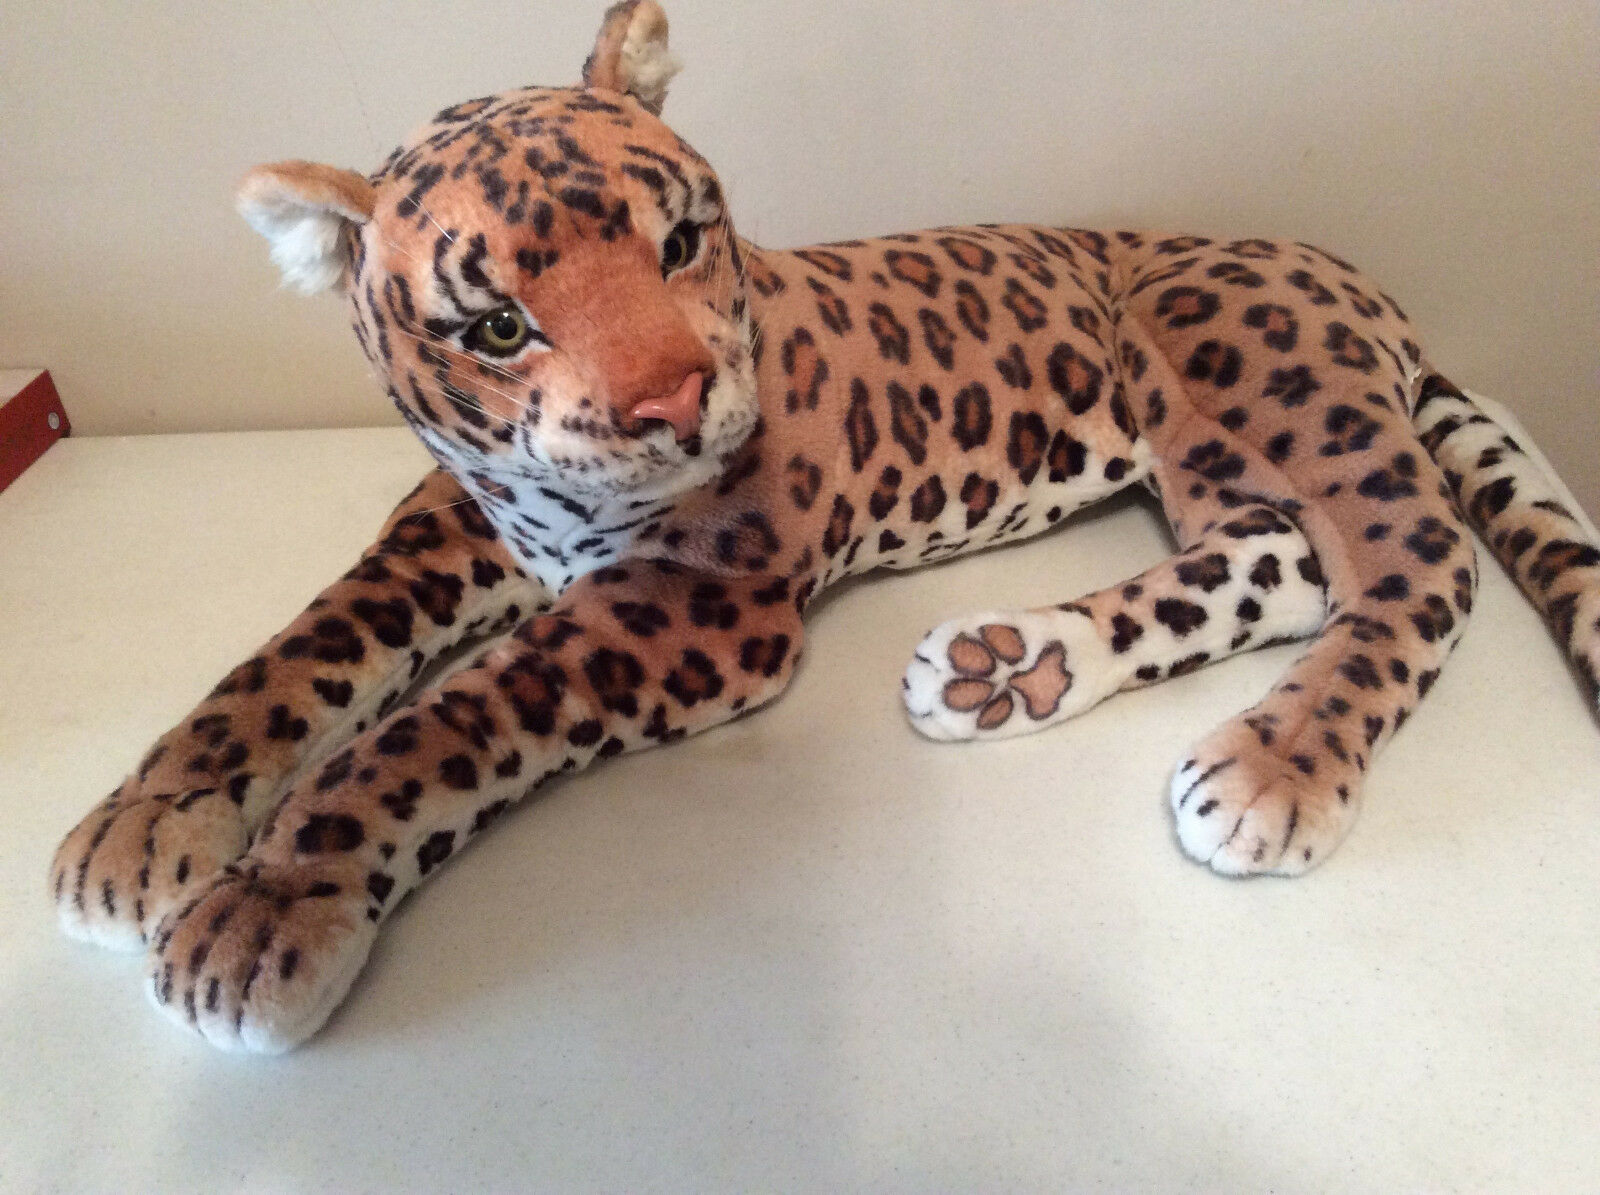 Large Plush Toy Leopard  Realistic Big Cat Soft Pillow 32  Long With Out Tail